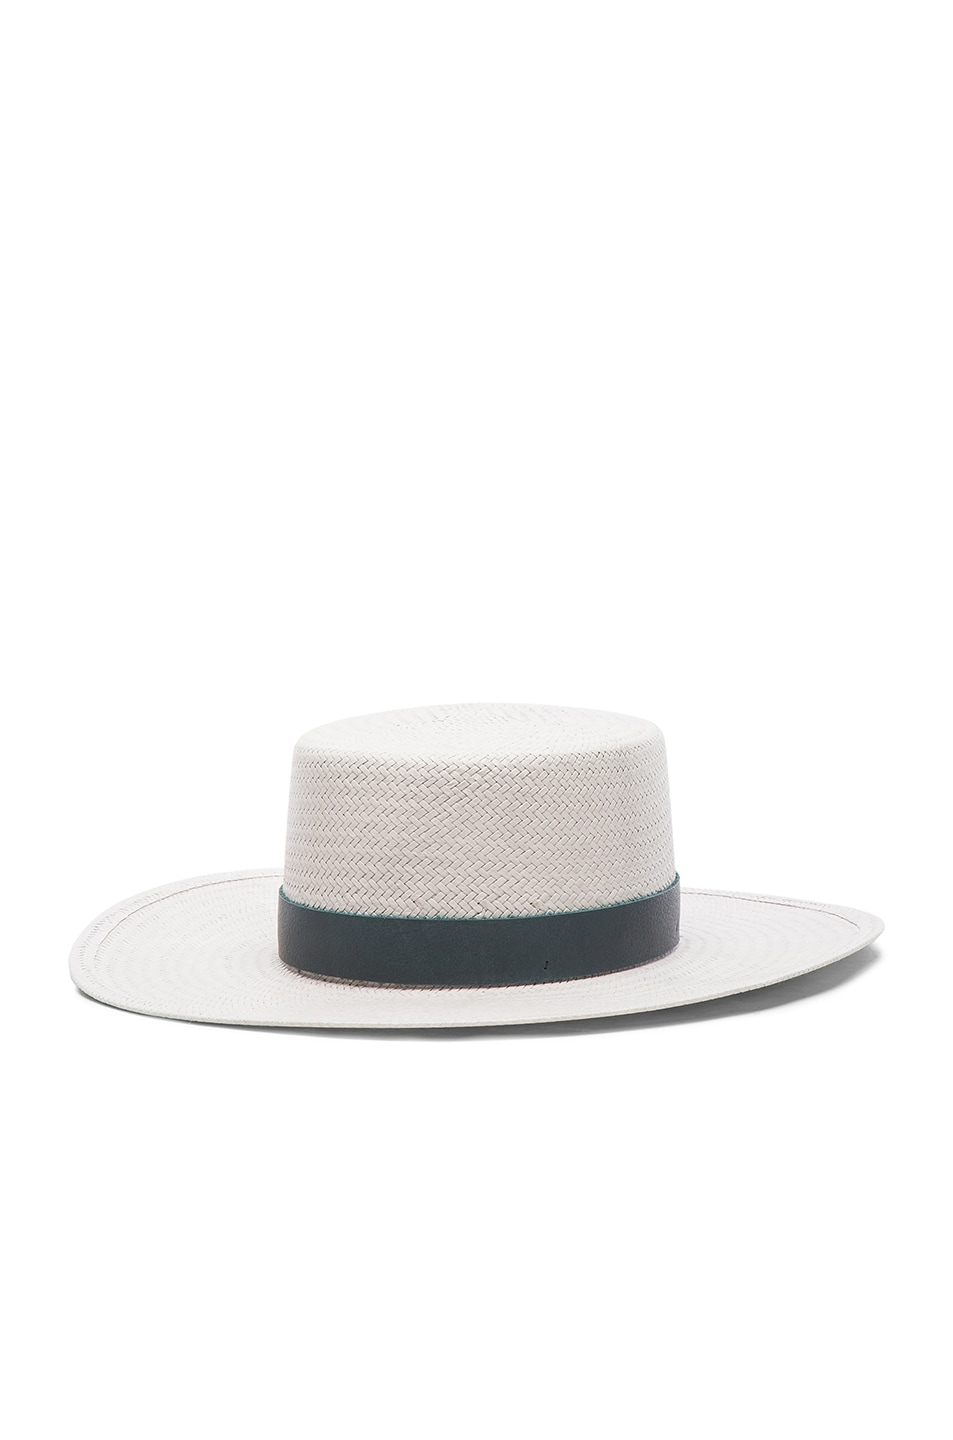 Image 2 of Janessa Leone Exclusive Wright Hat in Mineral Grey